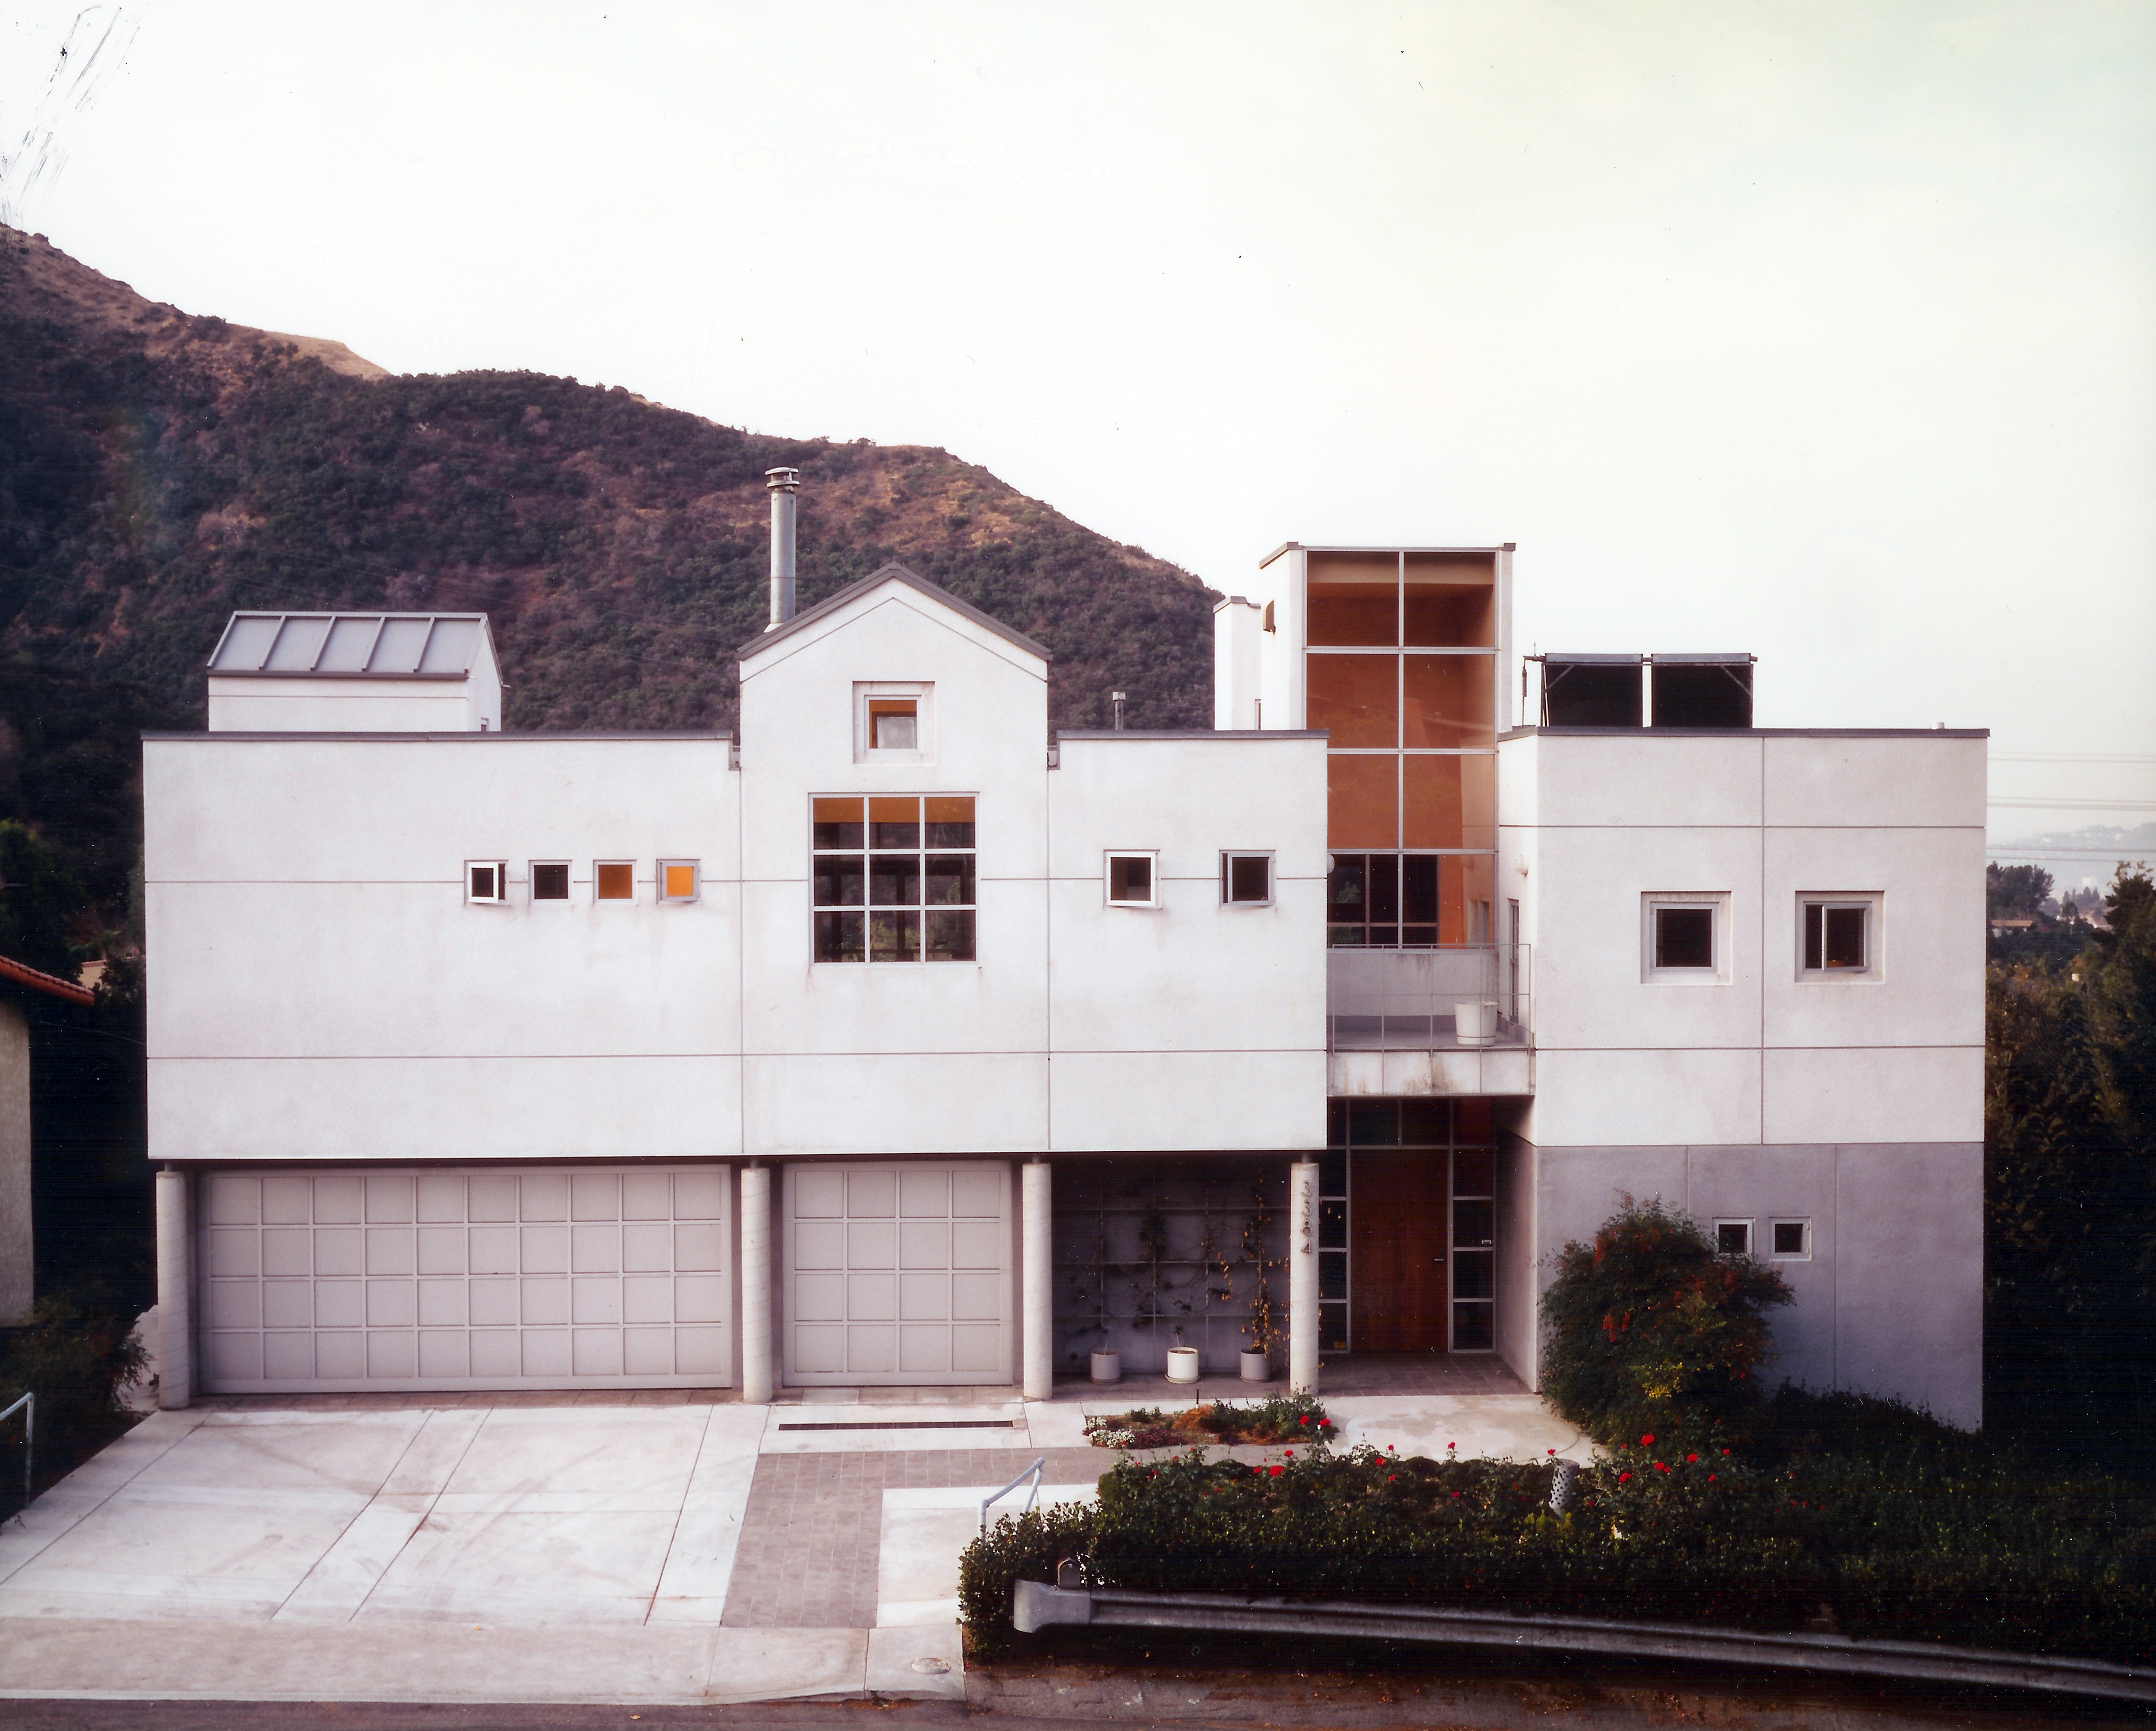 The Building As Context Is Designed To Continue The Building Edge Along The  Street, And To Respect The Adjacent Buildings Height, Stucco Materials And  ...